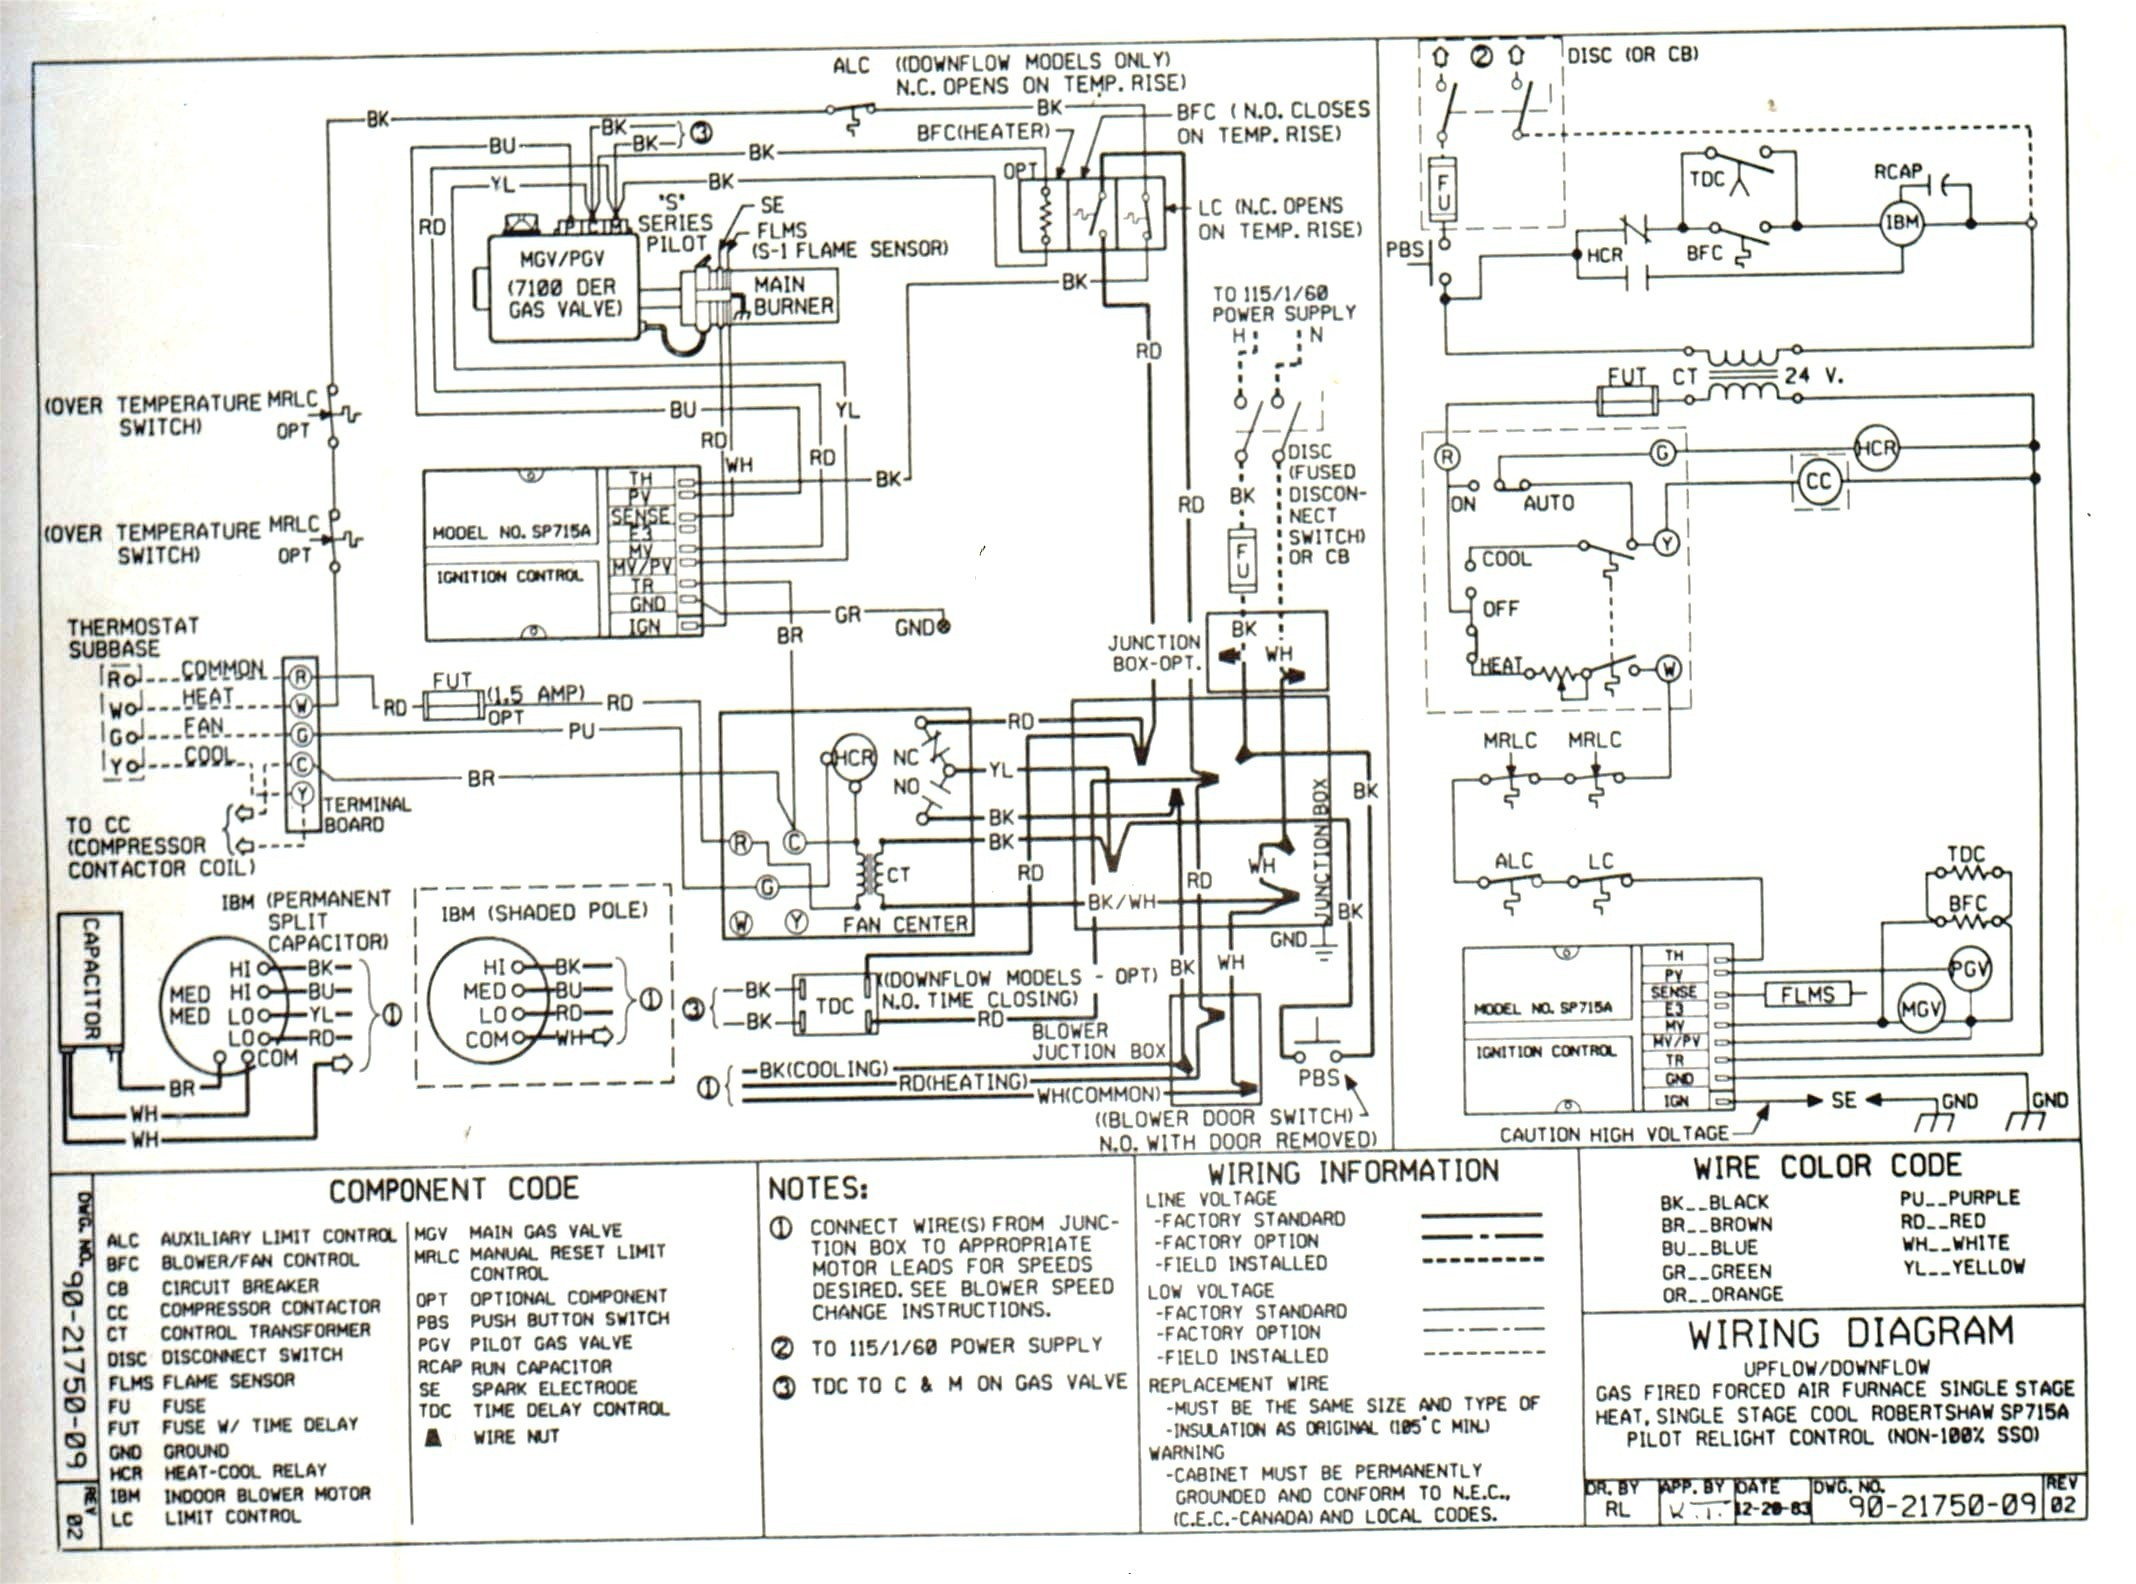 2002 Cherokee Coolinf Fan Wiring Diagram Wiring Diagram Plug Symbol Of 2002 Cherokee Coolinf Fan Wiring Diagram